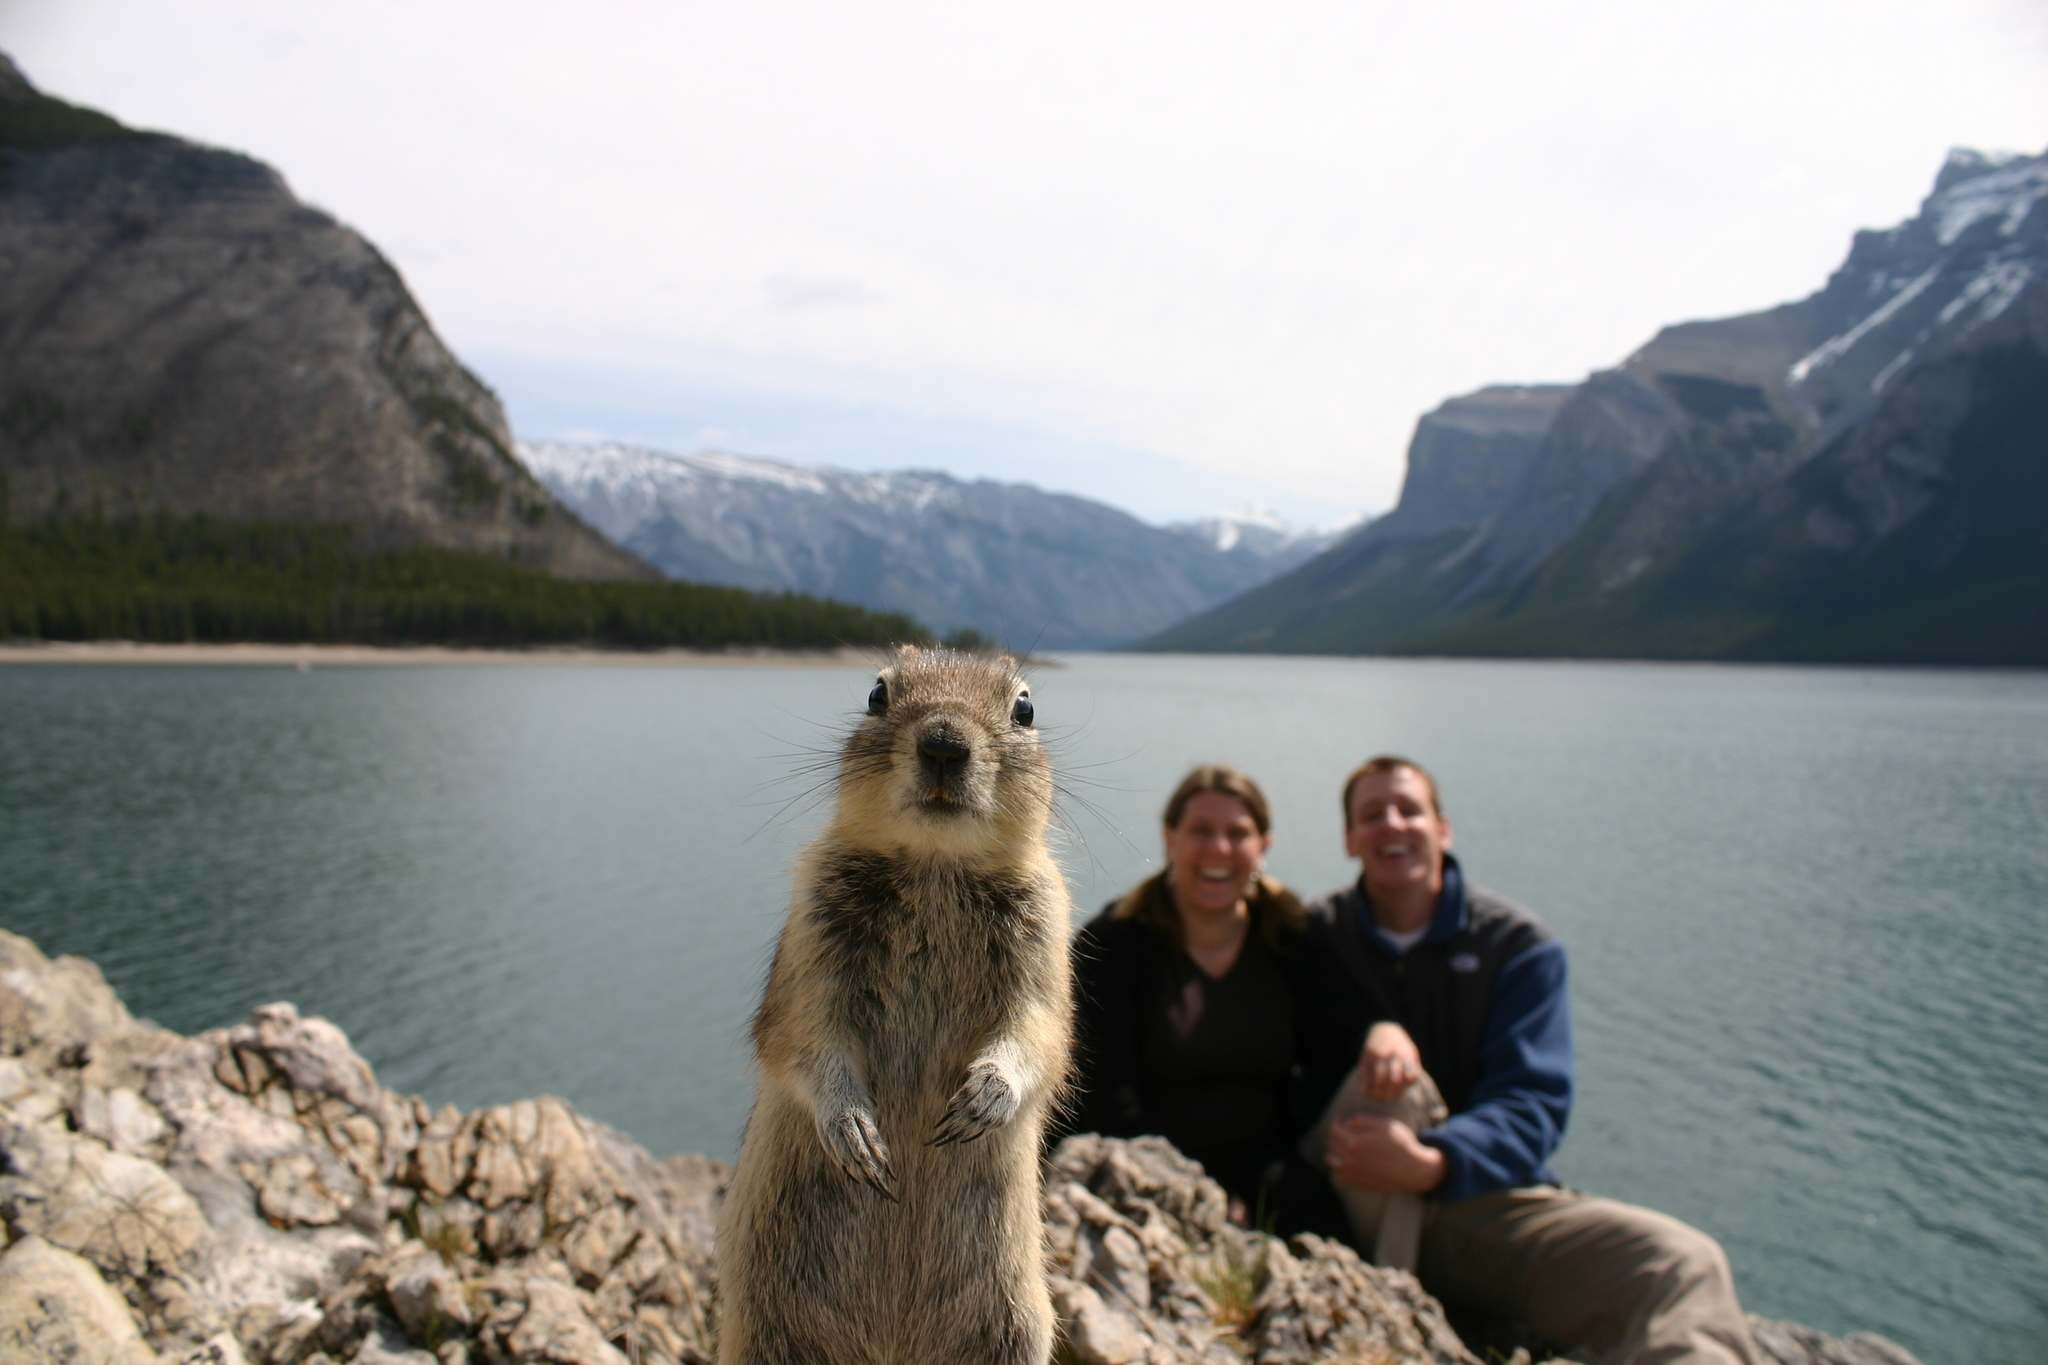 Melissa Brandts</p><p>An Alberta ground squirrel inserts itself into a timed photo being taken by a U.S. couple at a lake in Banff National Park in 2009.</p></p>